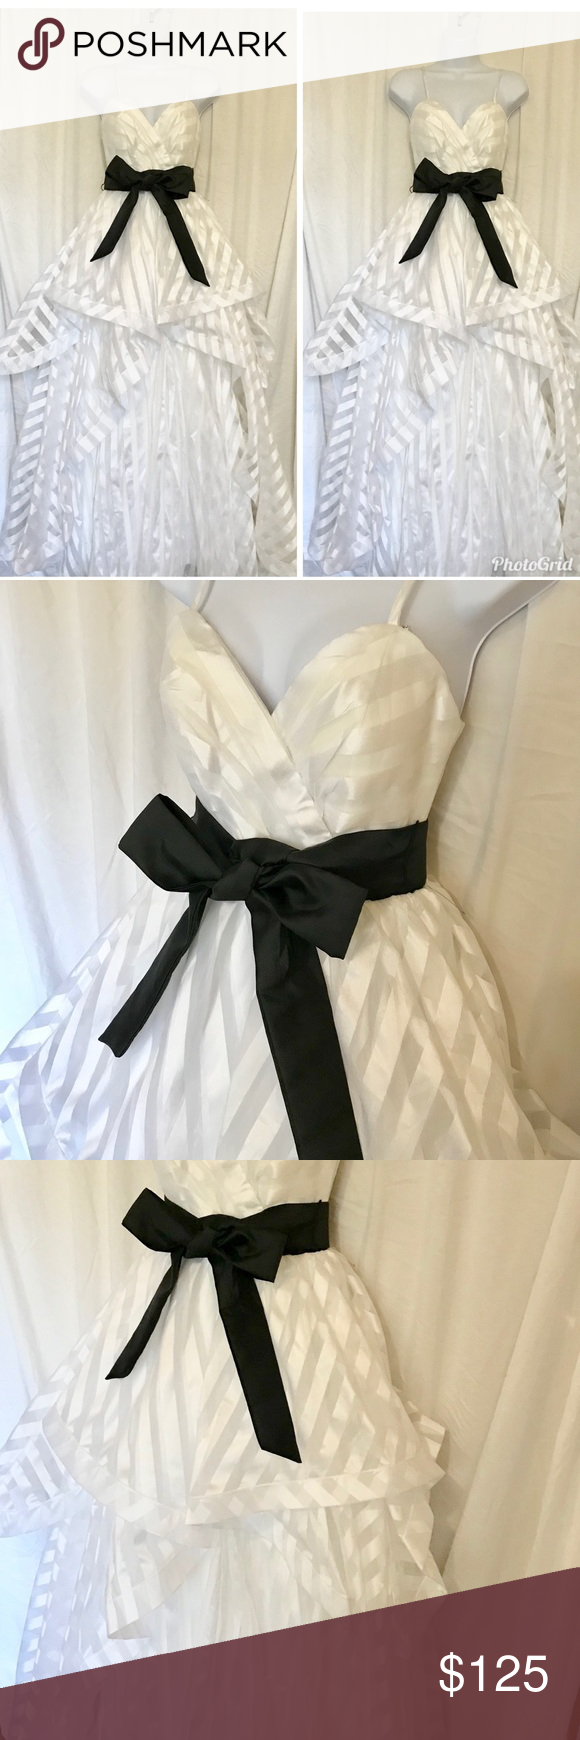 Xtraordinary white gown with black sash size white gown with